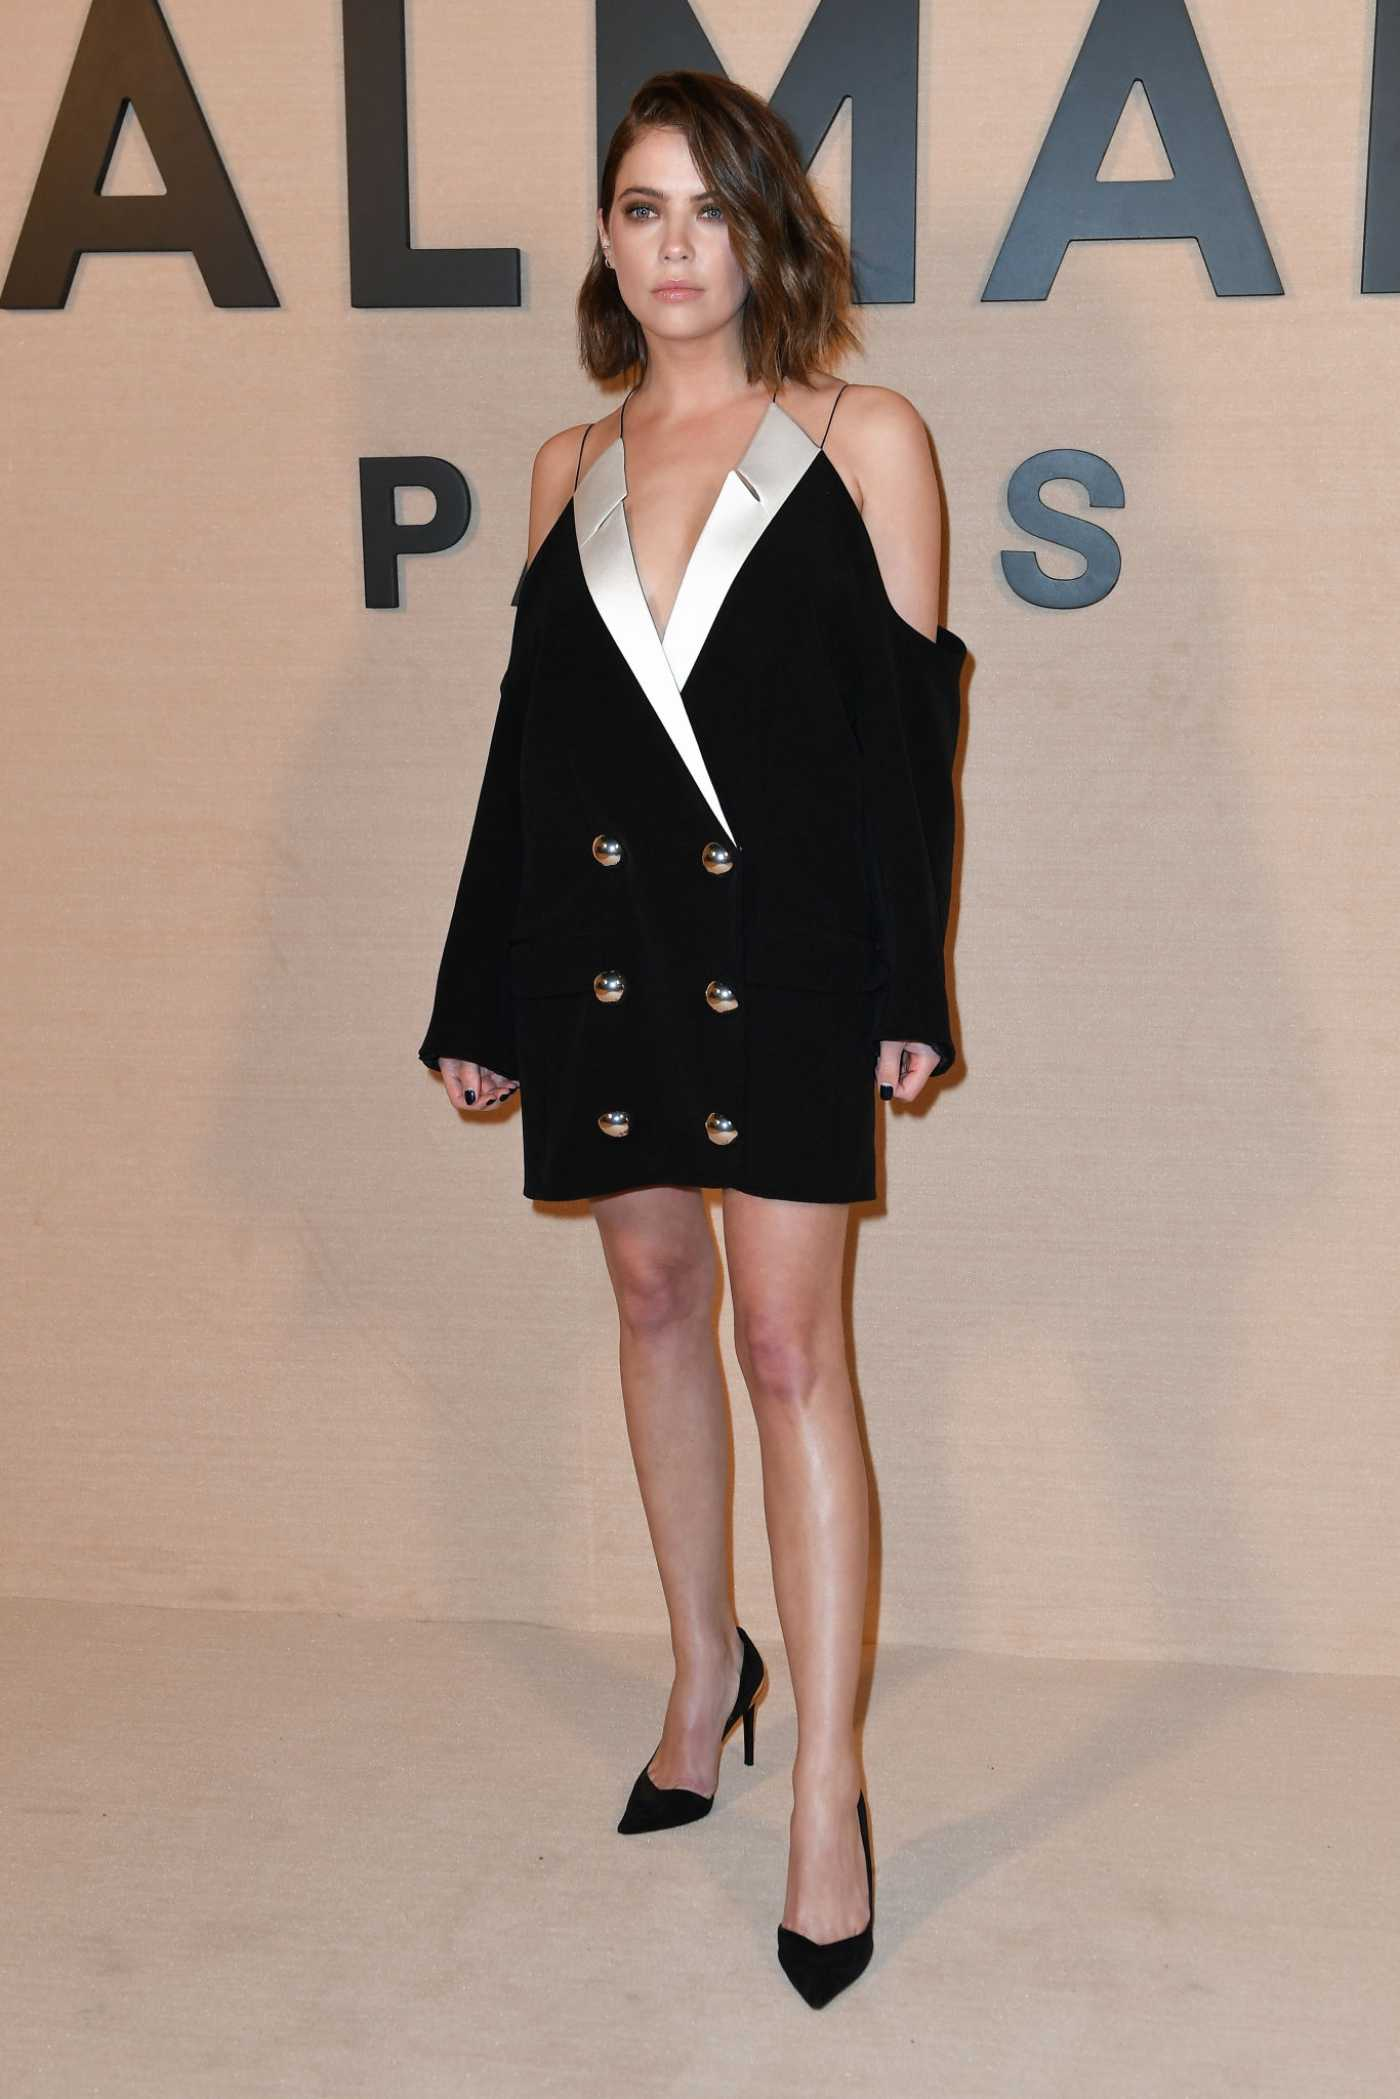 Ashley Benson Attends the Balmain Fashion Show in Paris 02/28/2020